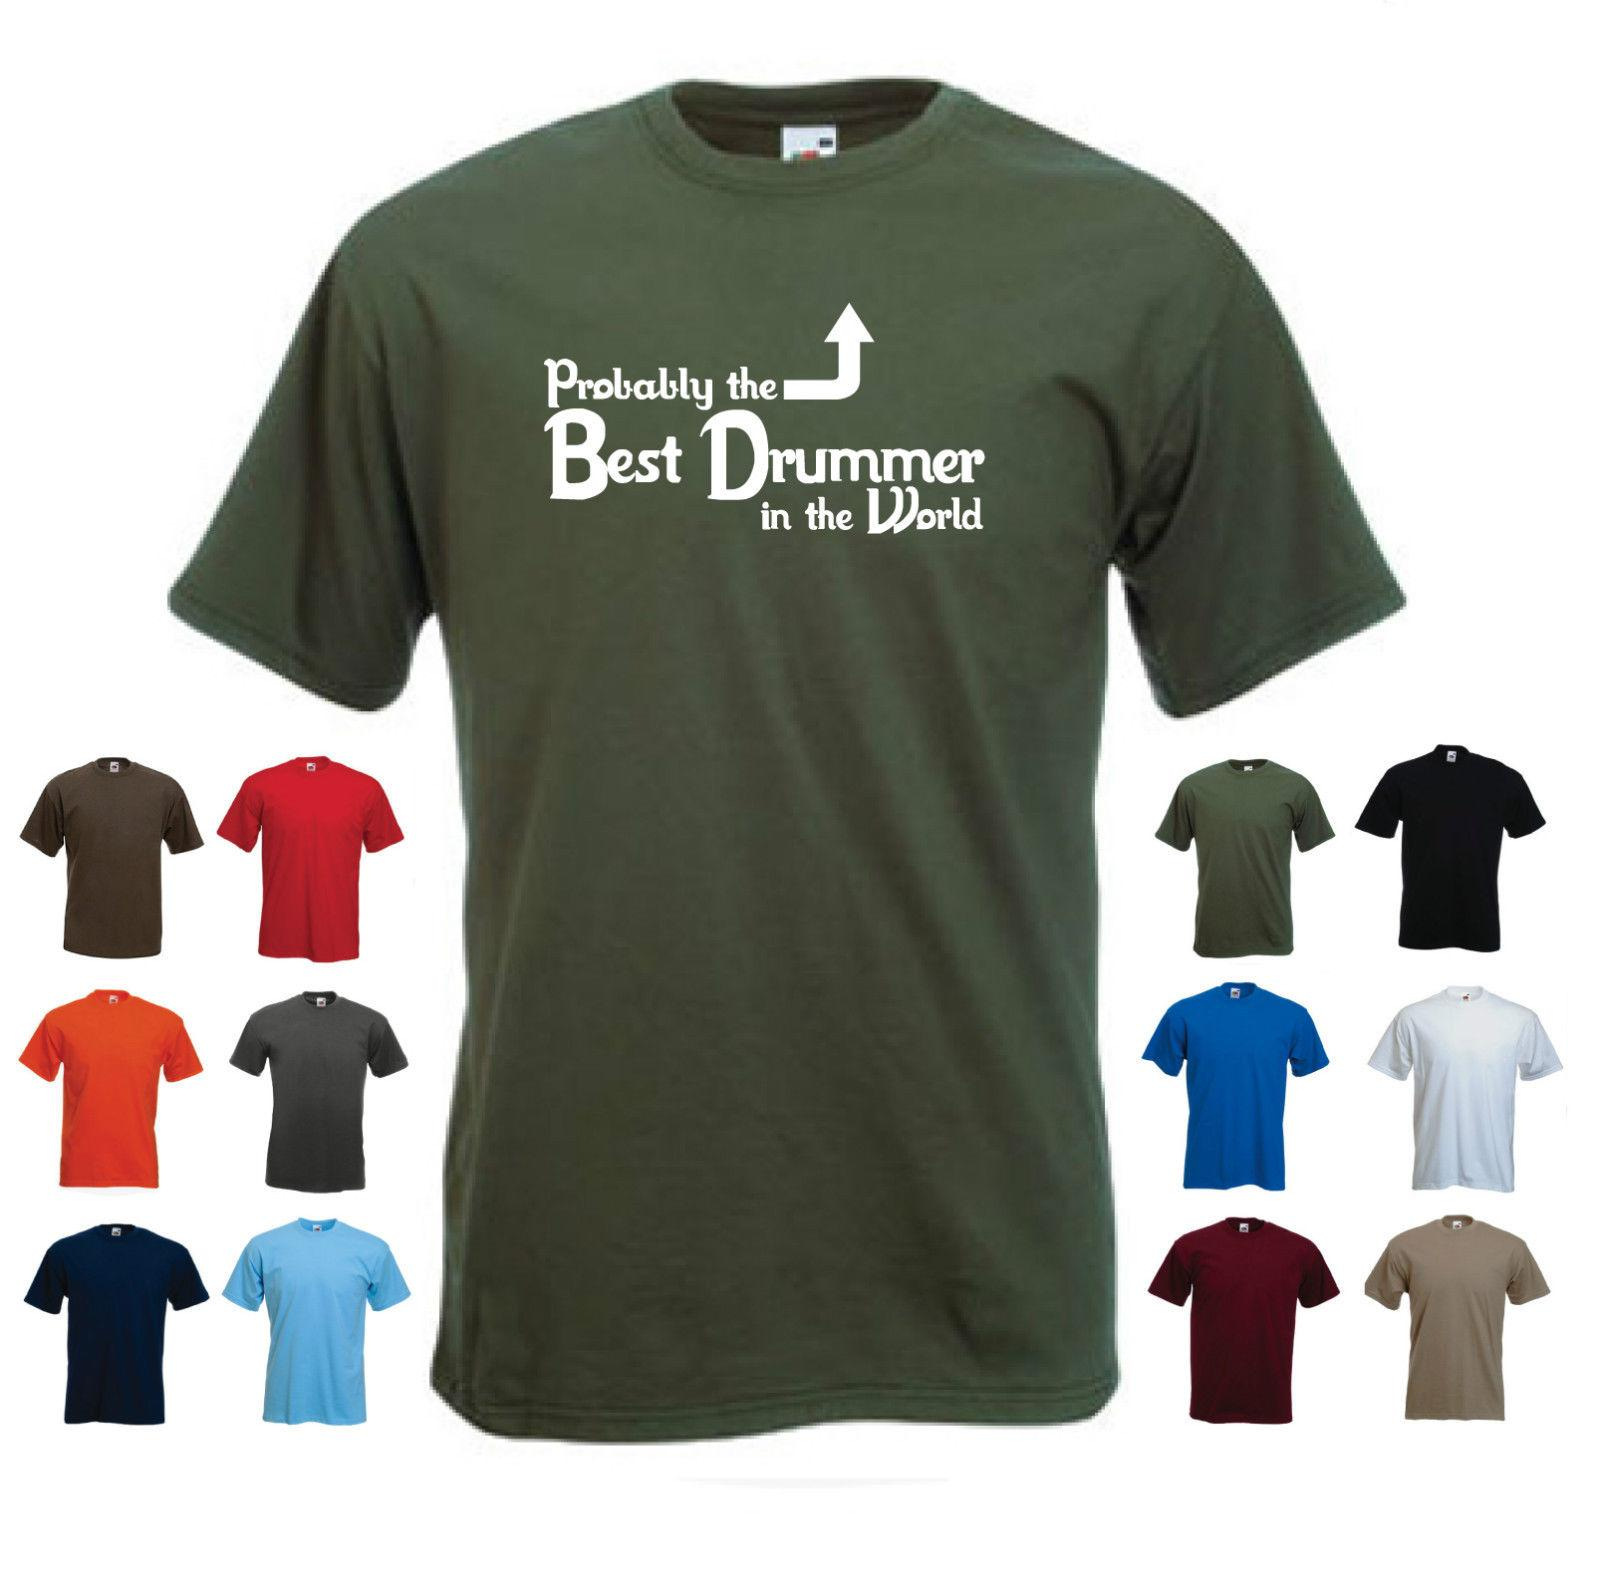 'Probably the Best Drummer in the World' Funny Drummer Band T-shirt